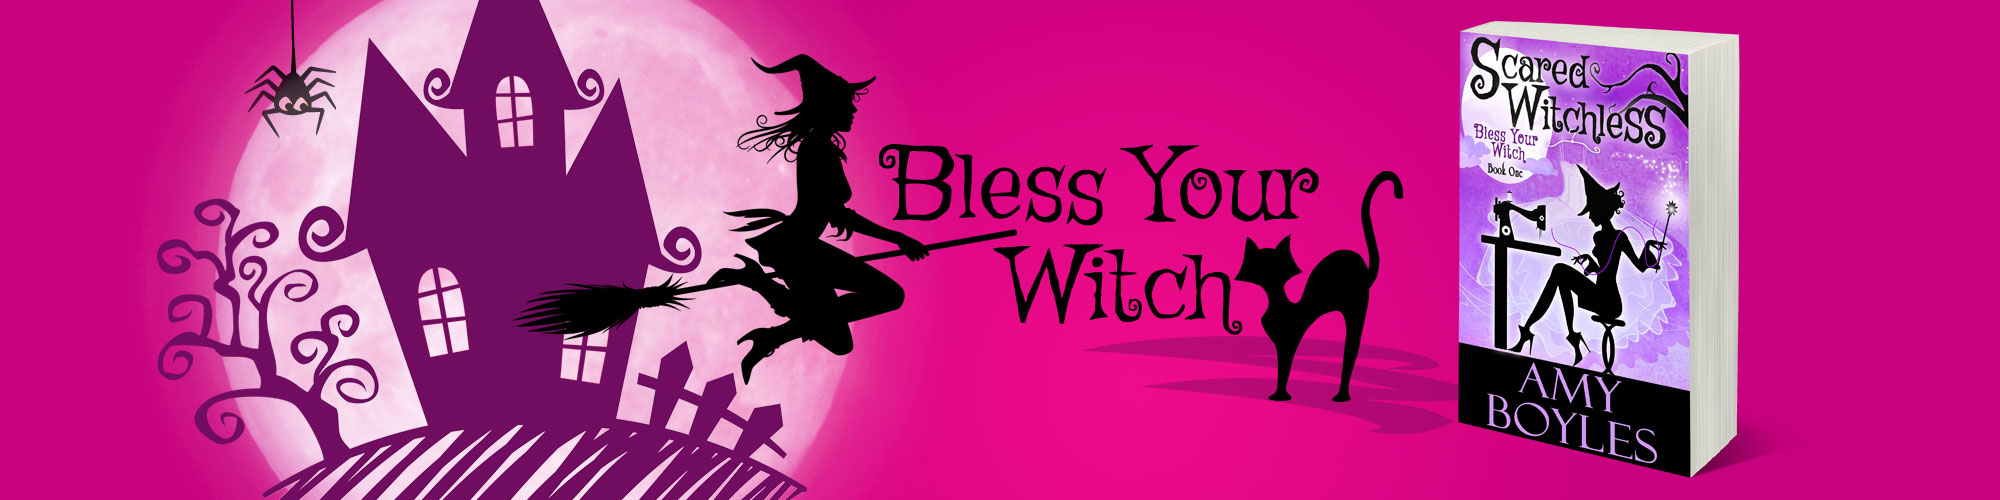 Bless Your Witch Series